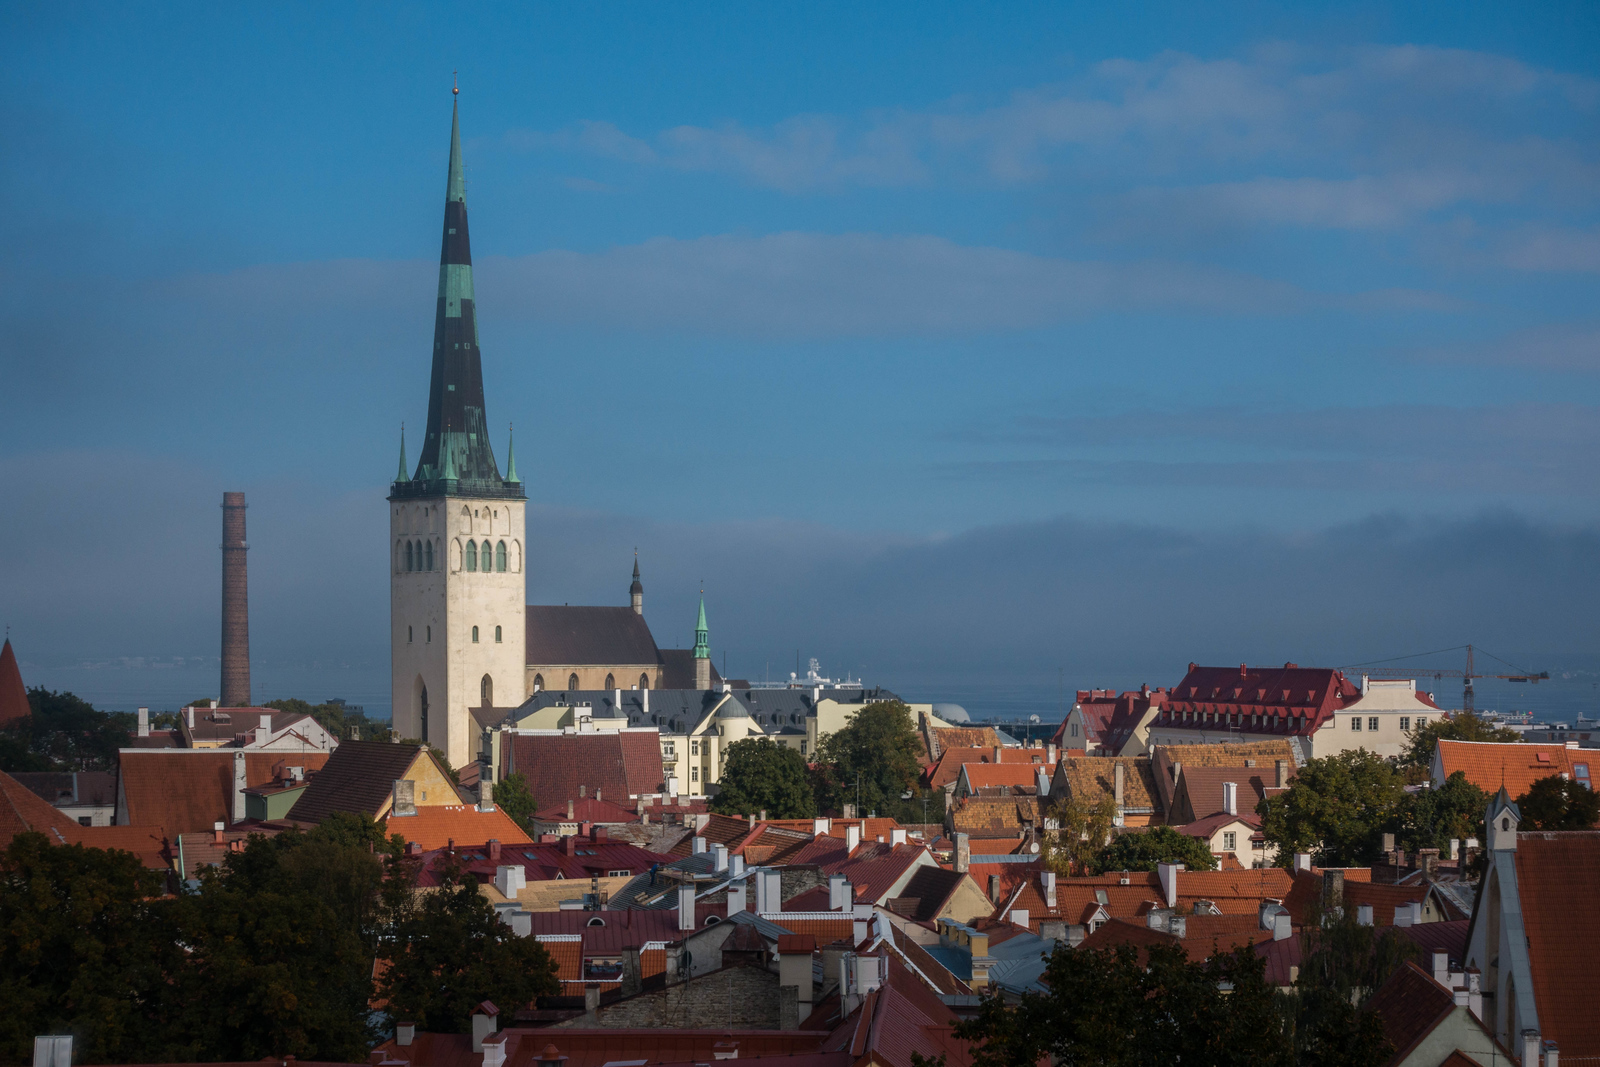 The beauty of Tallinn, Estonia